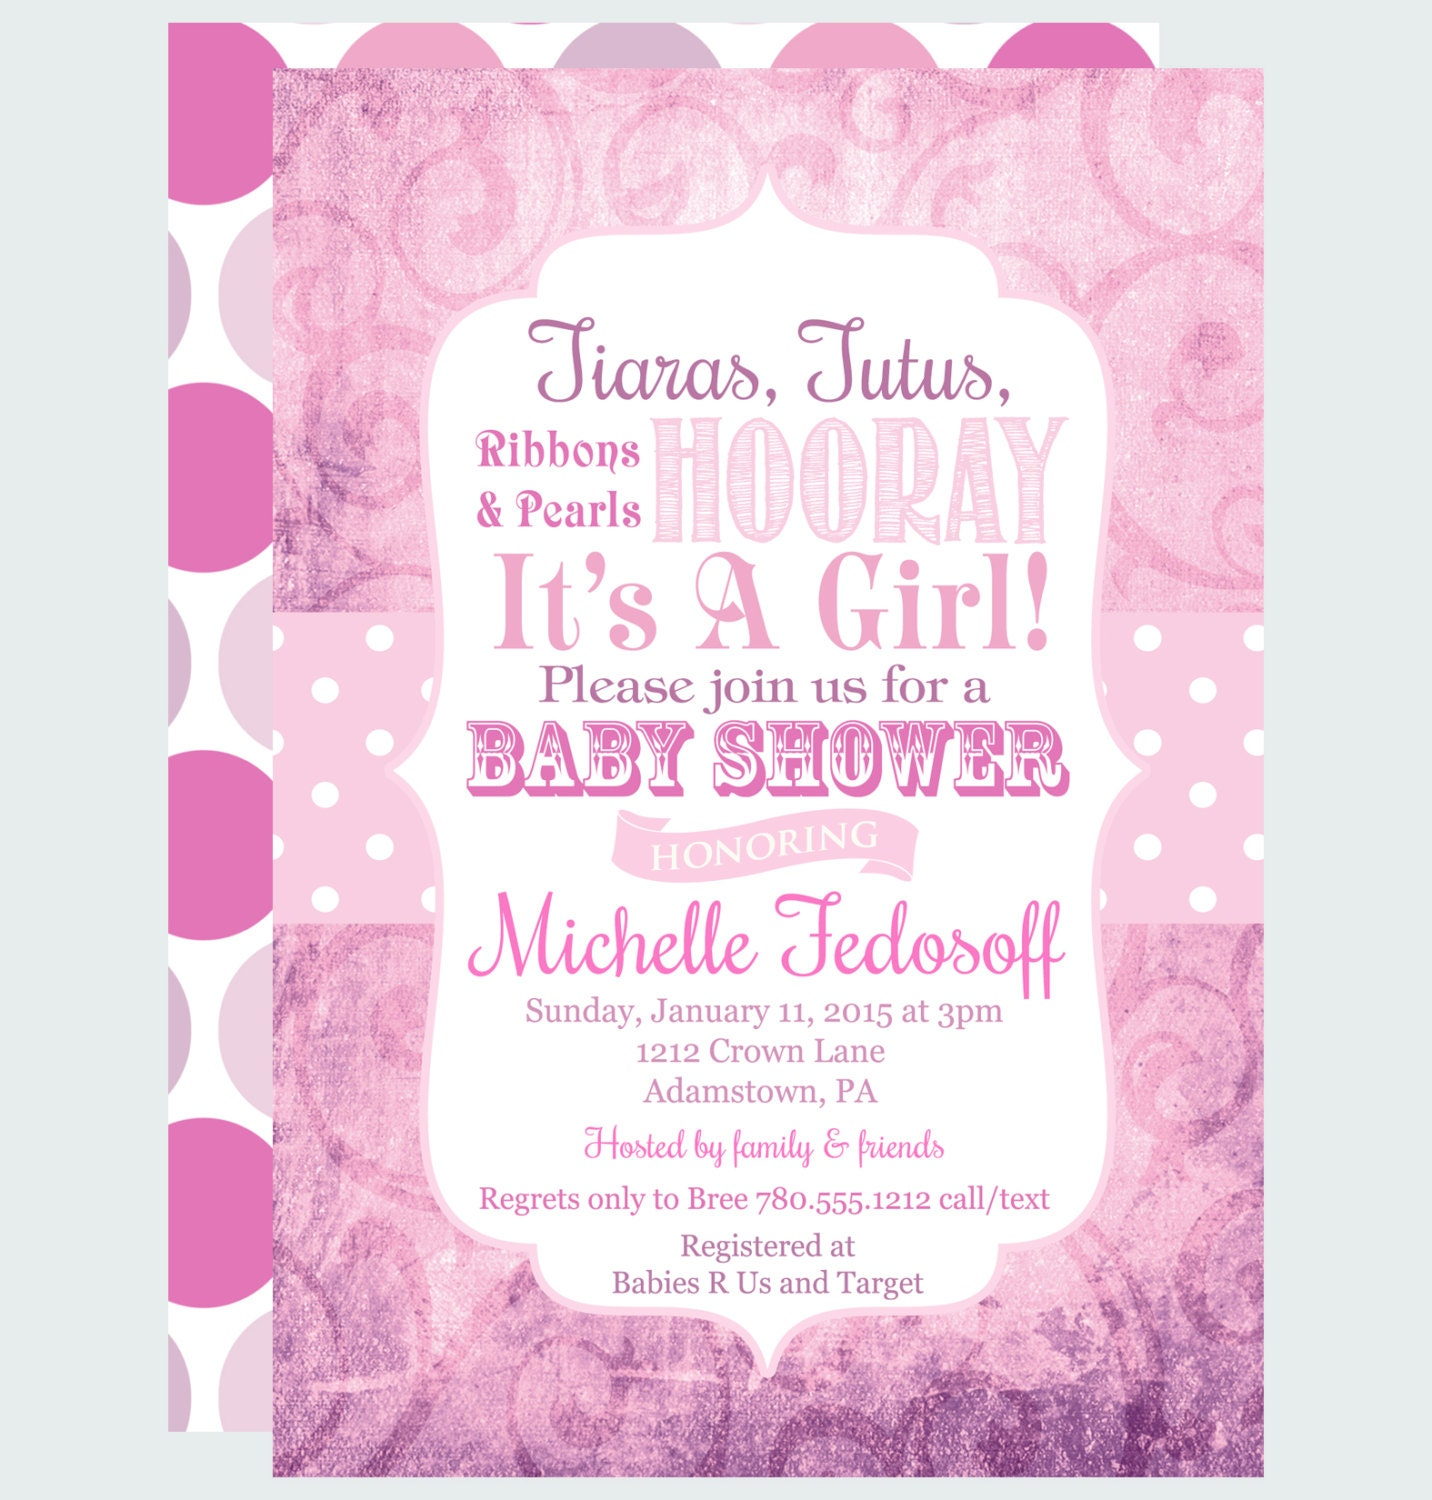 Damask Invitations was adorable invitation design